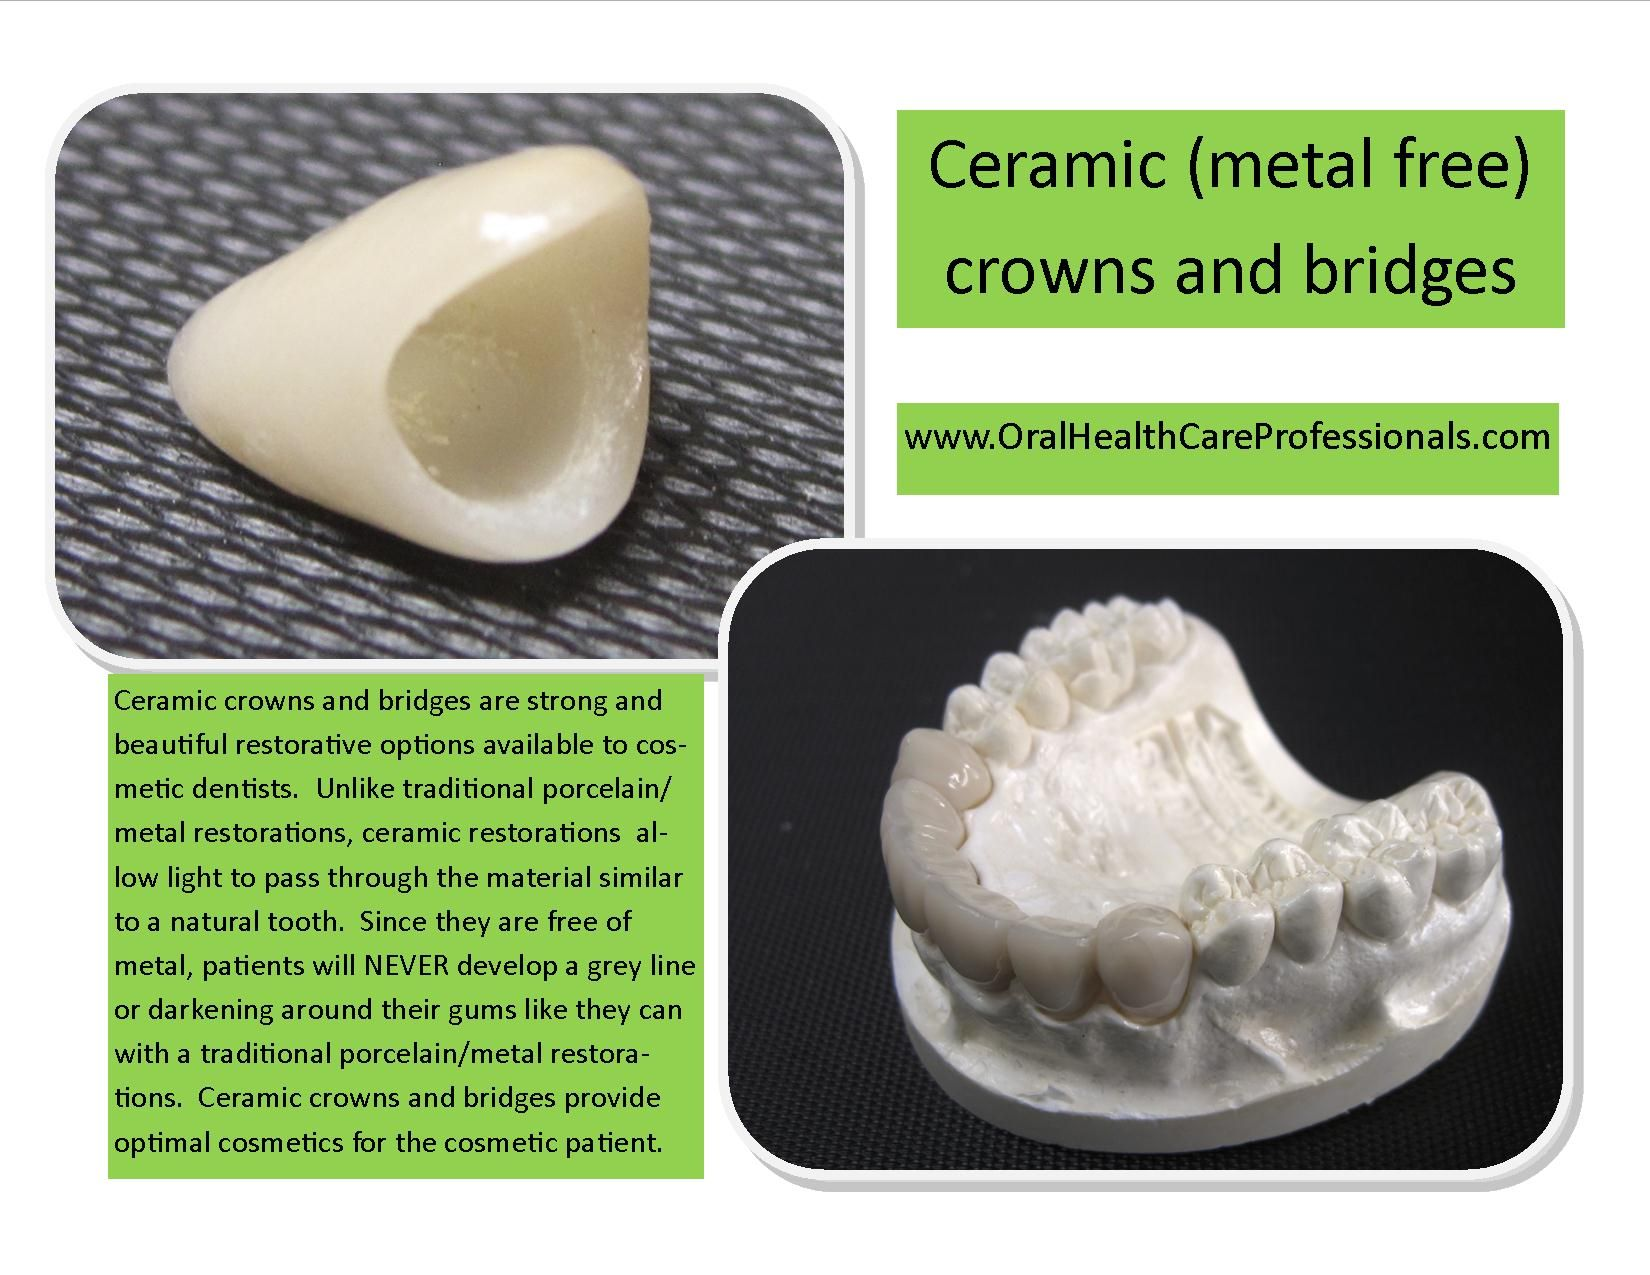 Ceramic #crowns and bridges are strong and beautiful restorative